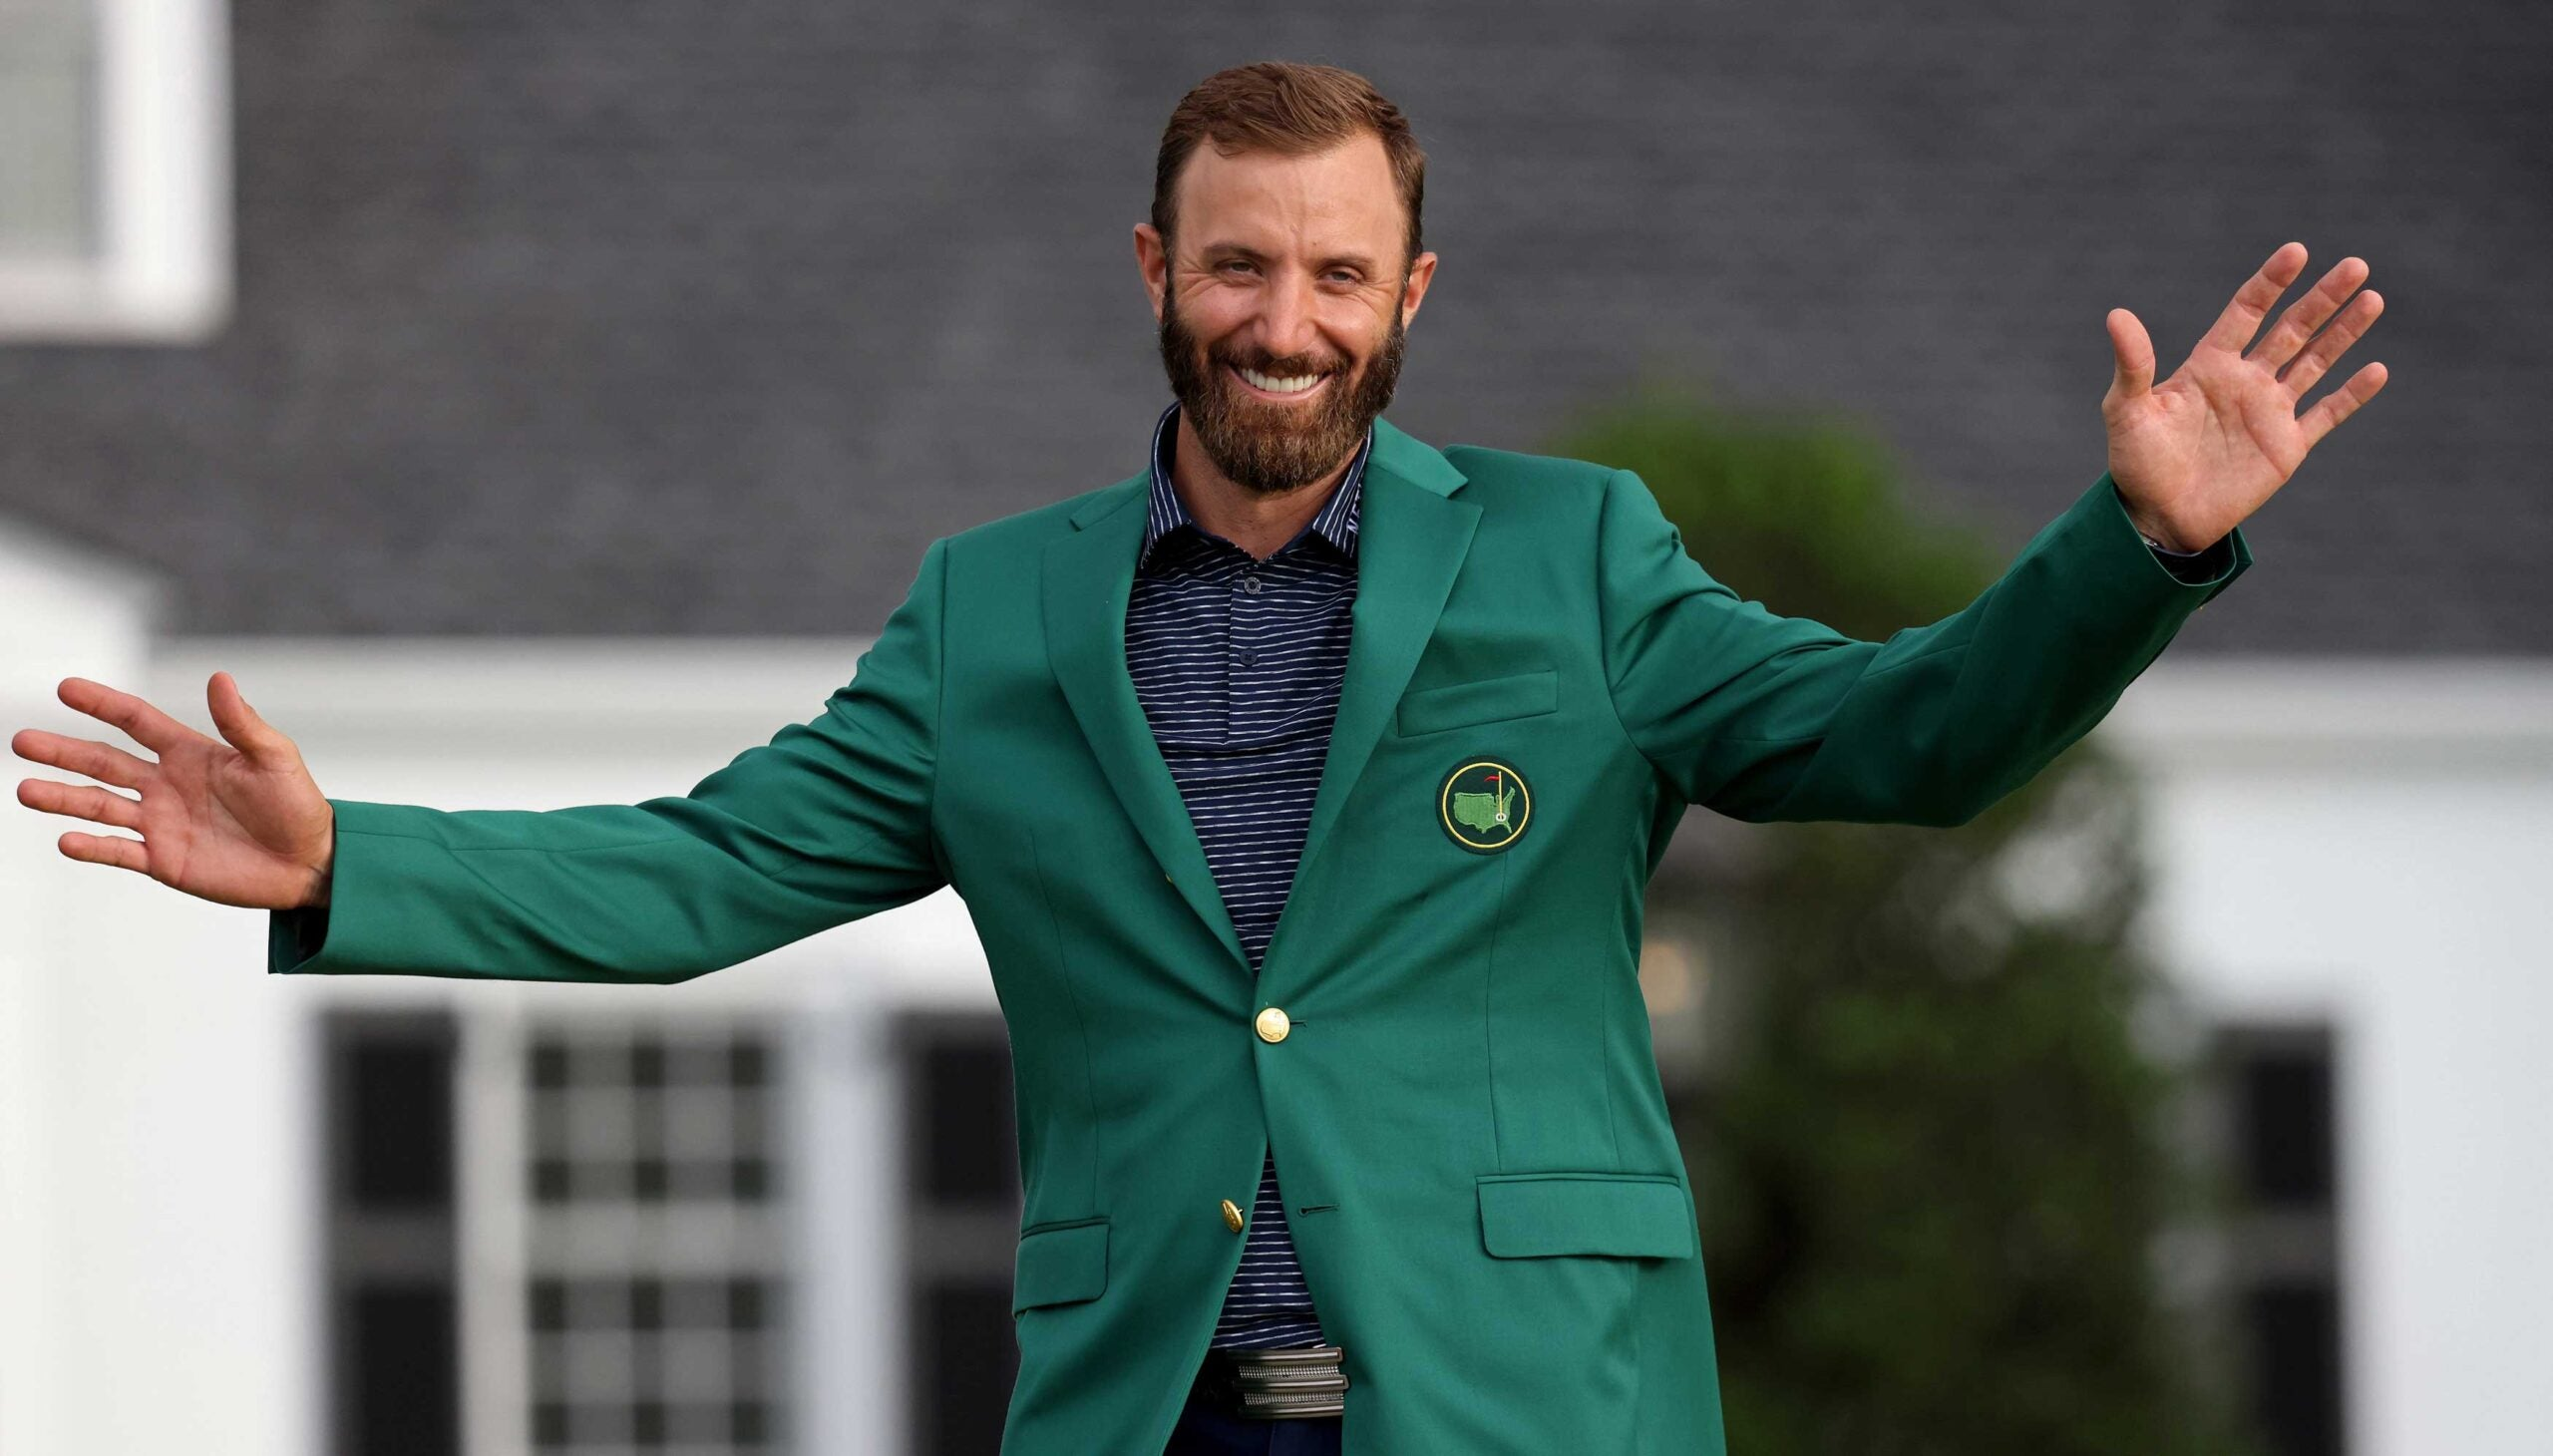 dustin johnson 2020 masters win